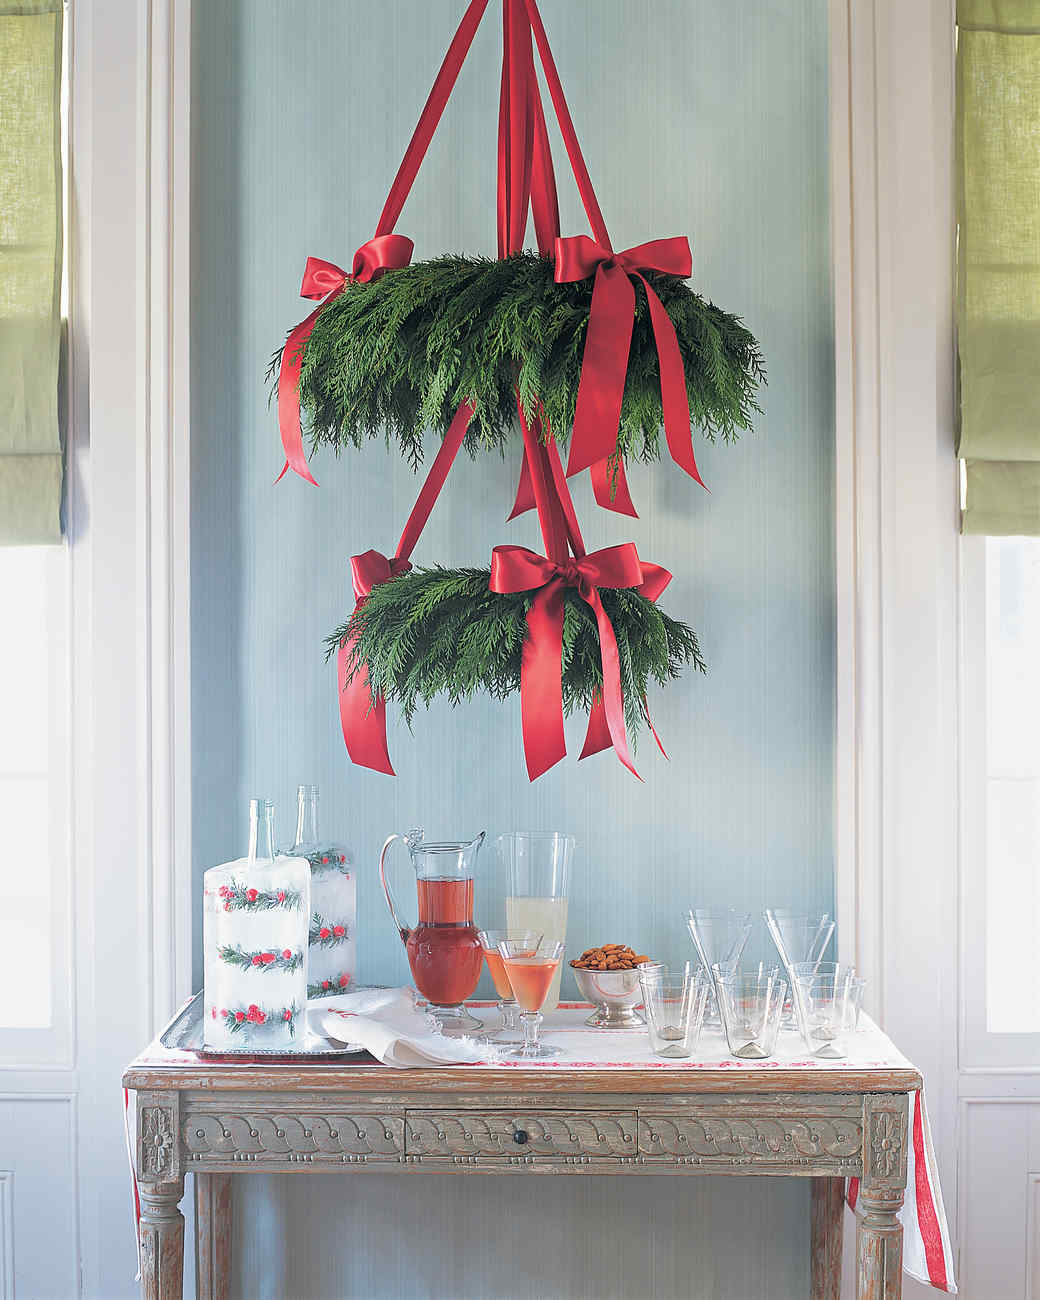 Christmas Decorations Holiday Decorations Decor: Quick Christmas Decorating Ideas